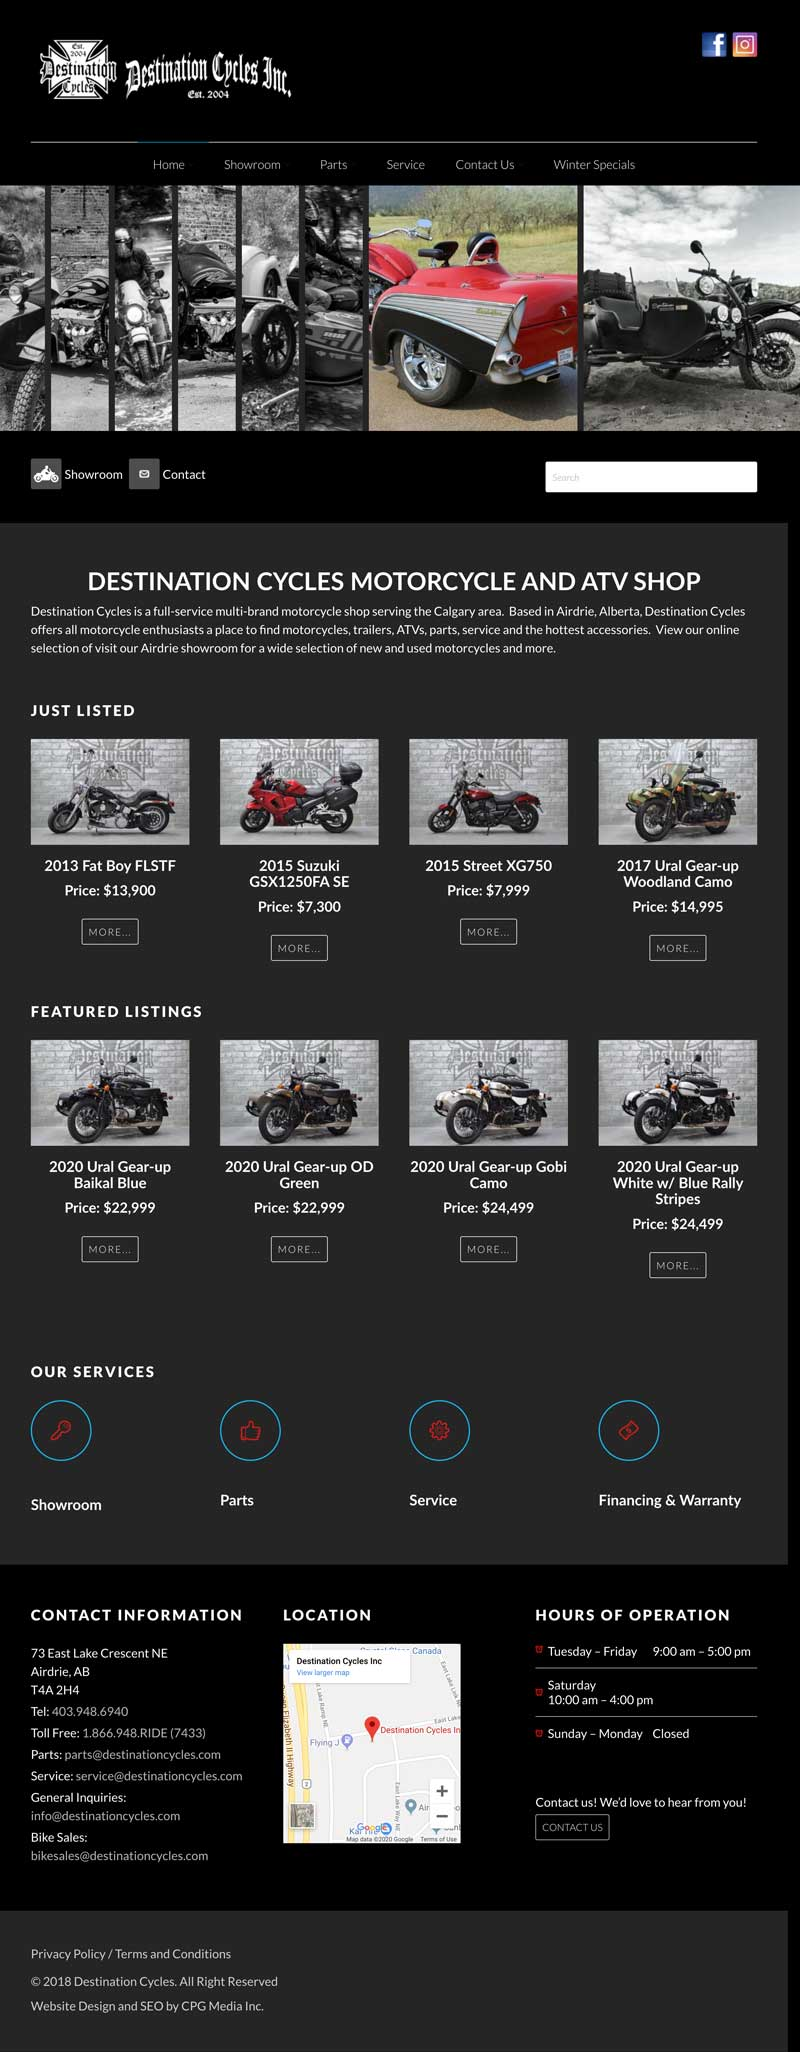 Destination Cycles - CPG Web Design